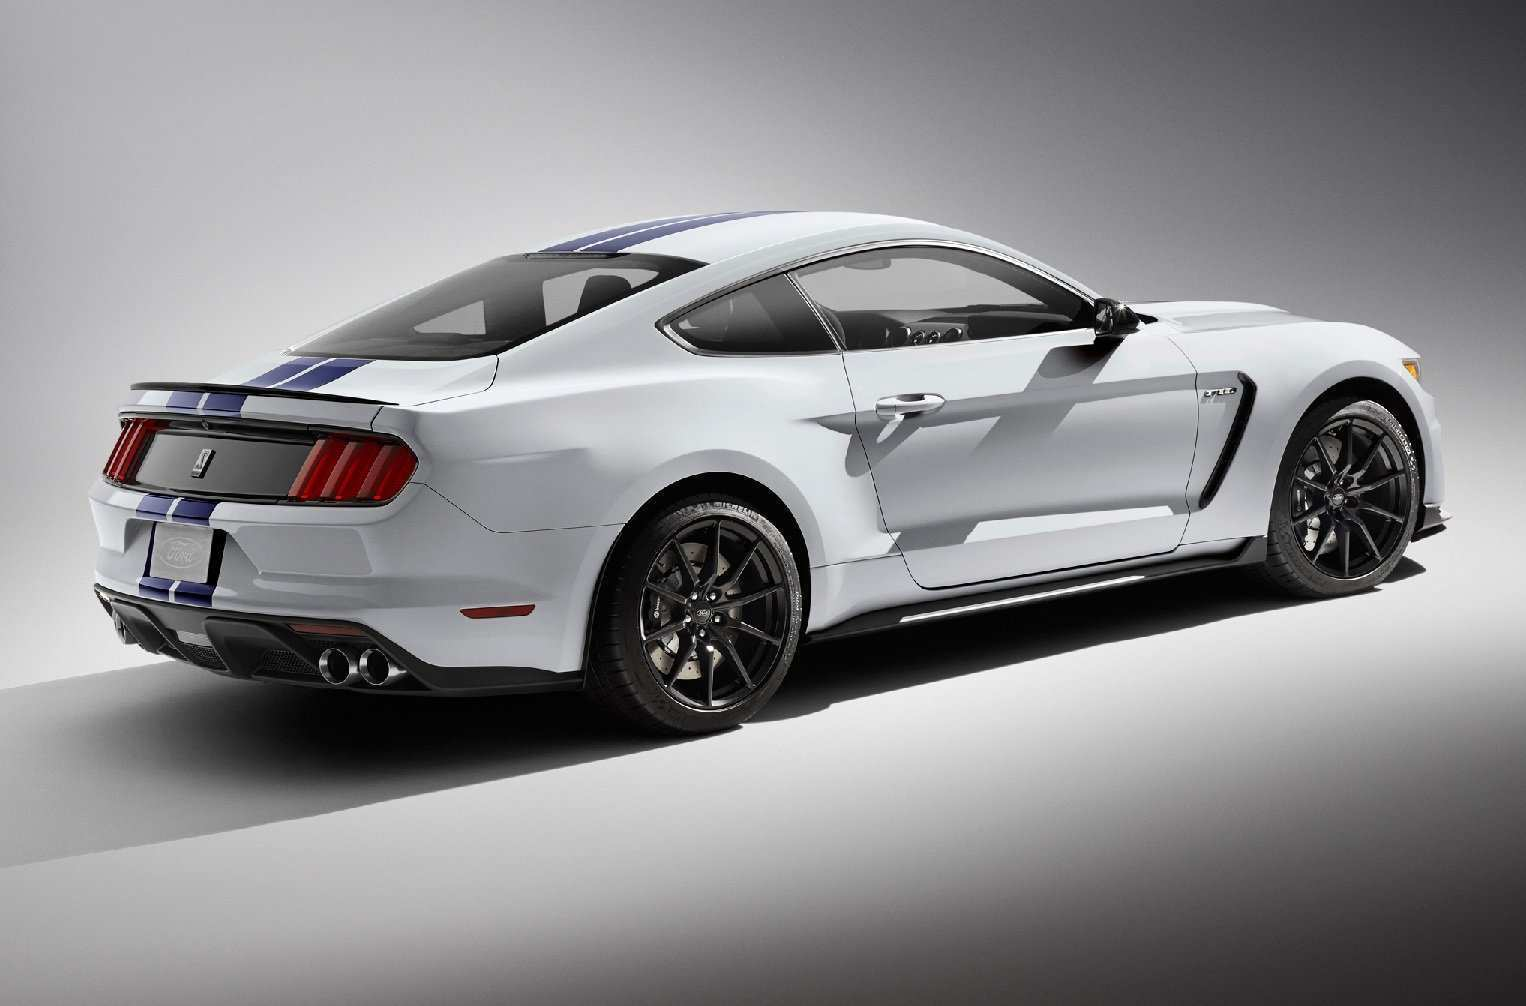 85 New 2020 Mustang Shelby Gt350 Photos